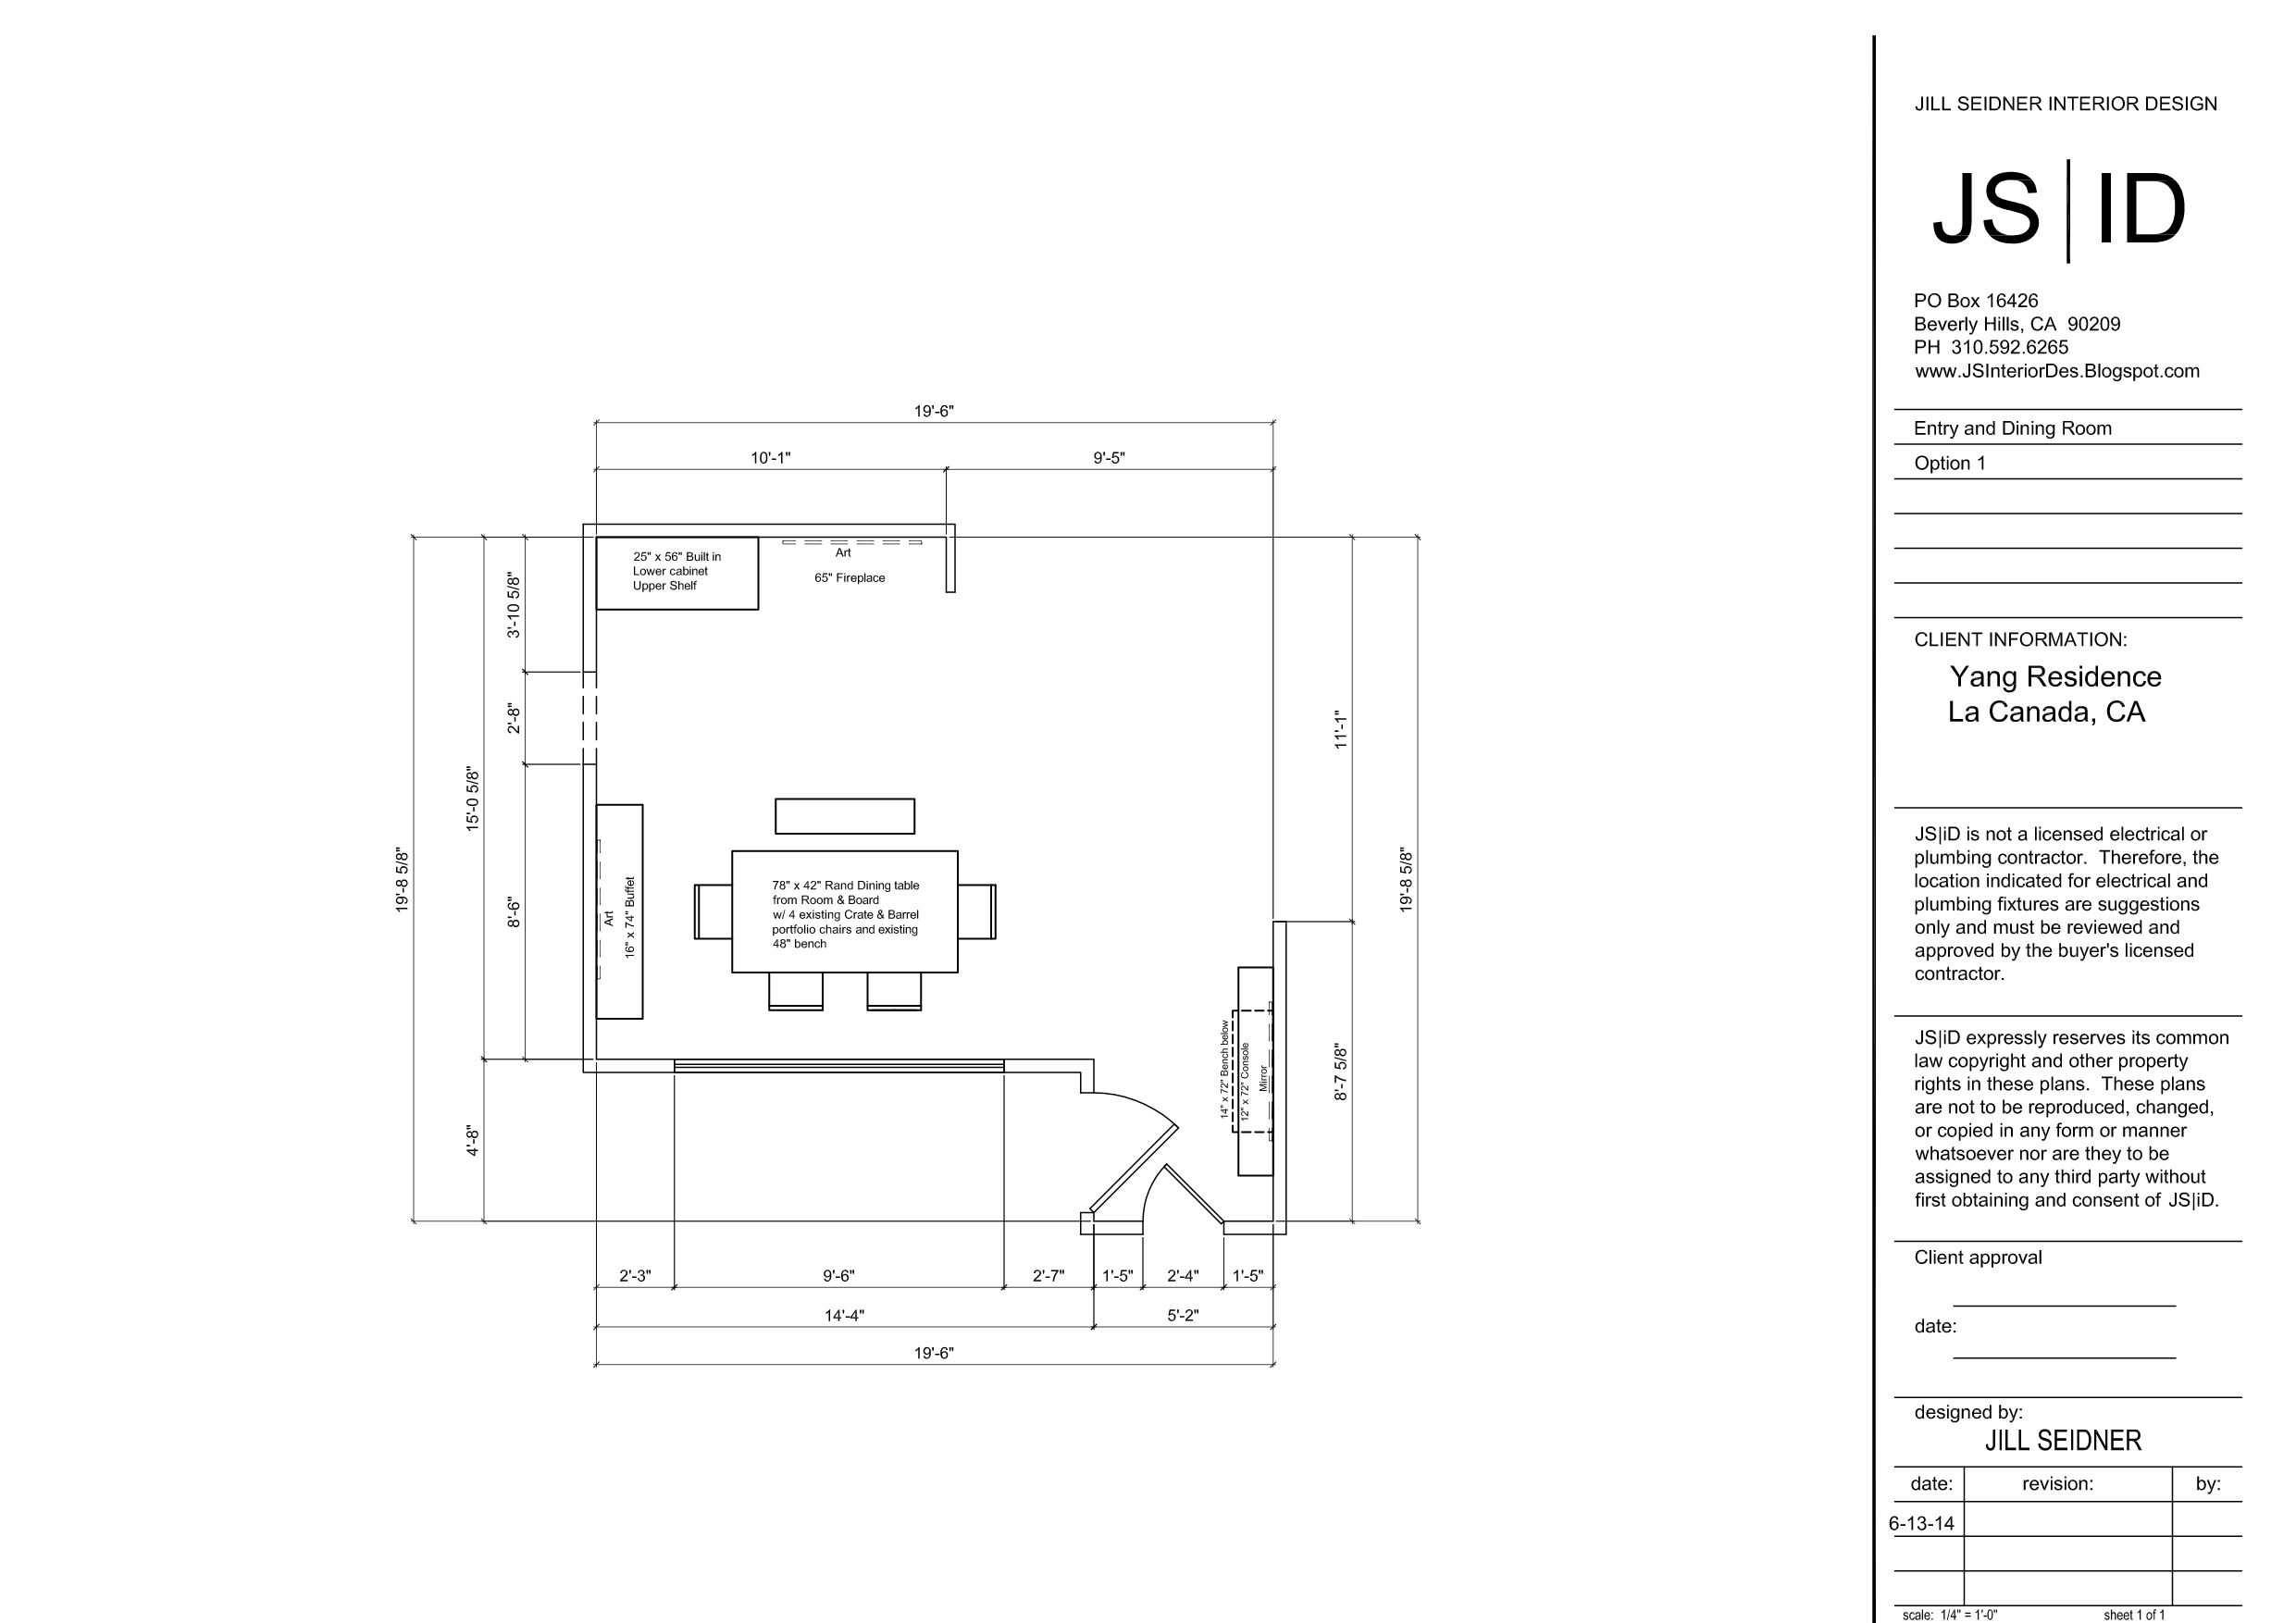 Lacanadaflintridge Ca Residence Entry  Dining Room Furniture Unique Dining Room Floor Plans Review